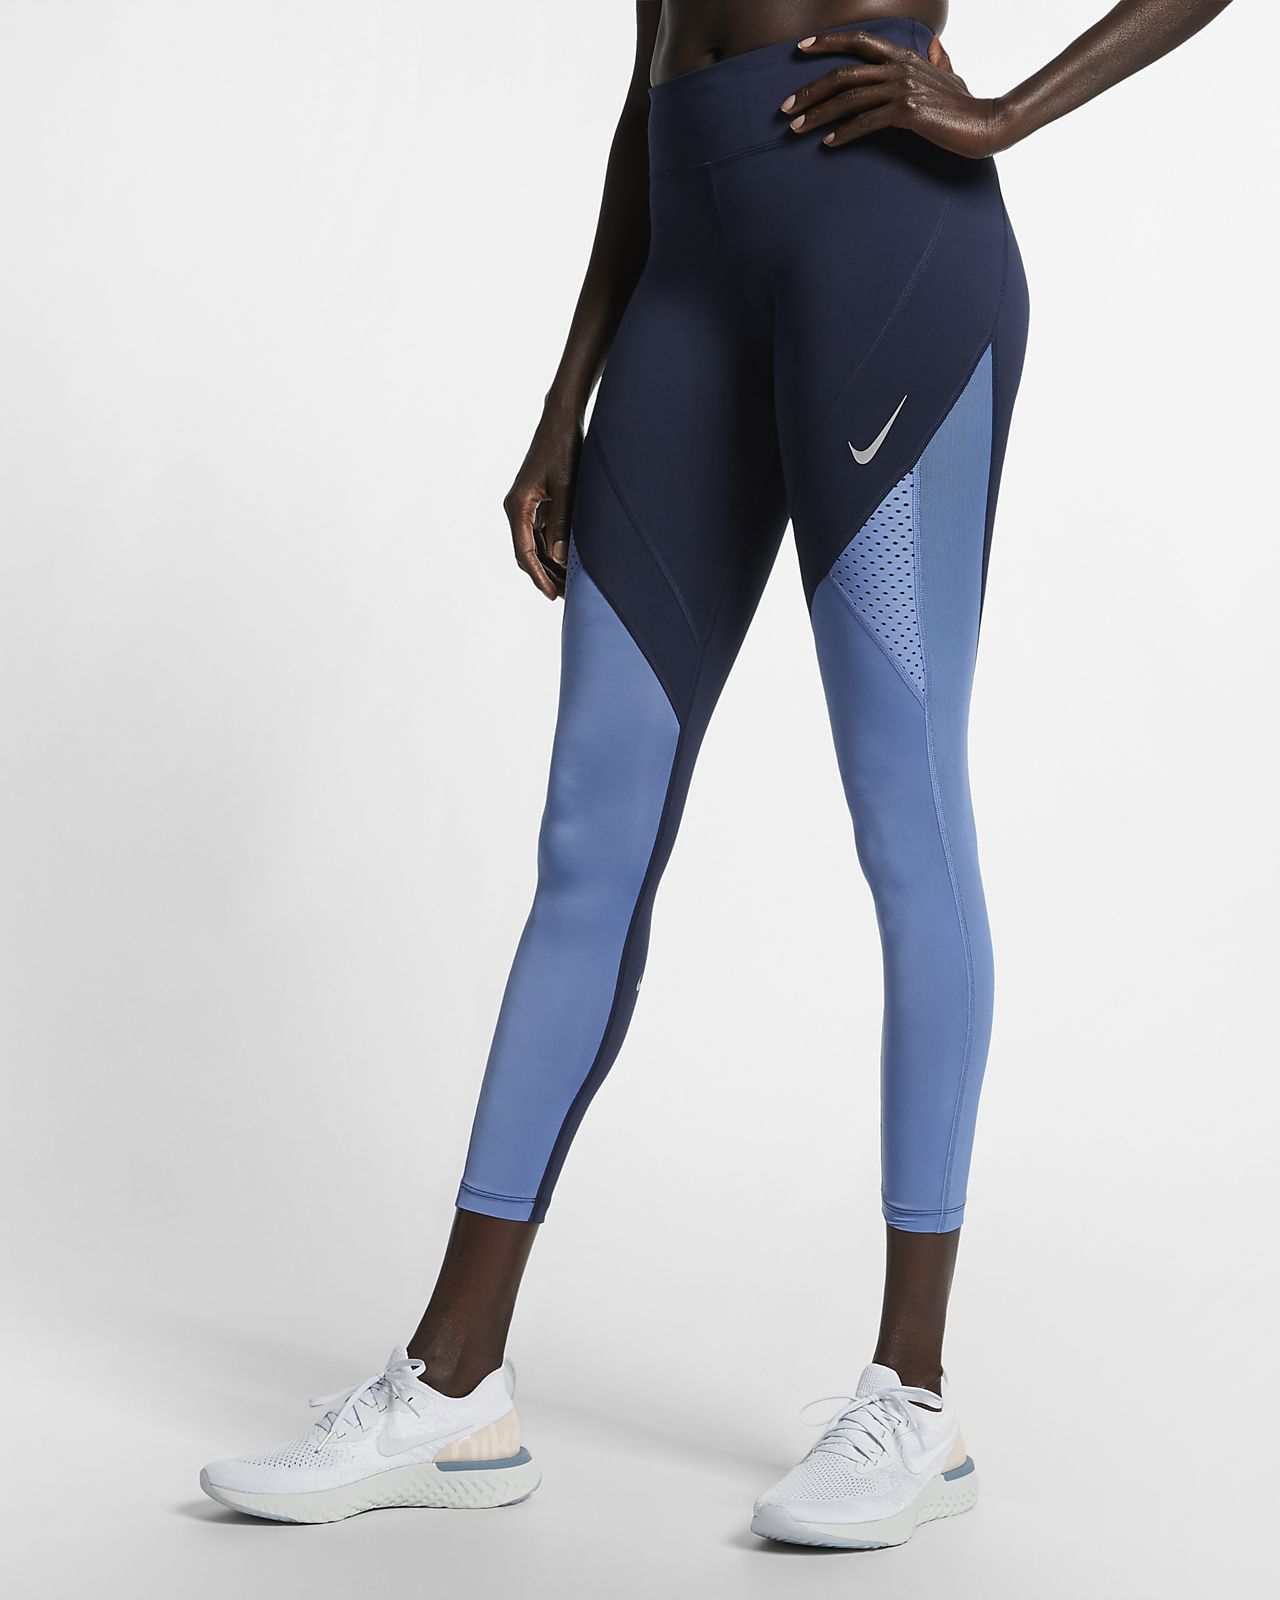 6ff5a5741a4a88 Nike Epic Lux Women's 7/8 Running Tights. Nike.com PT